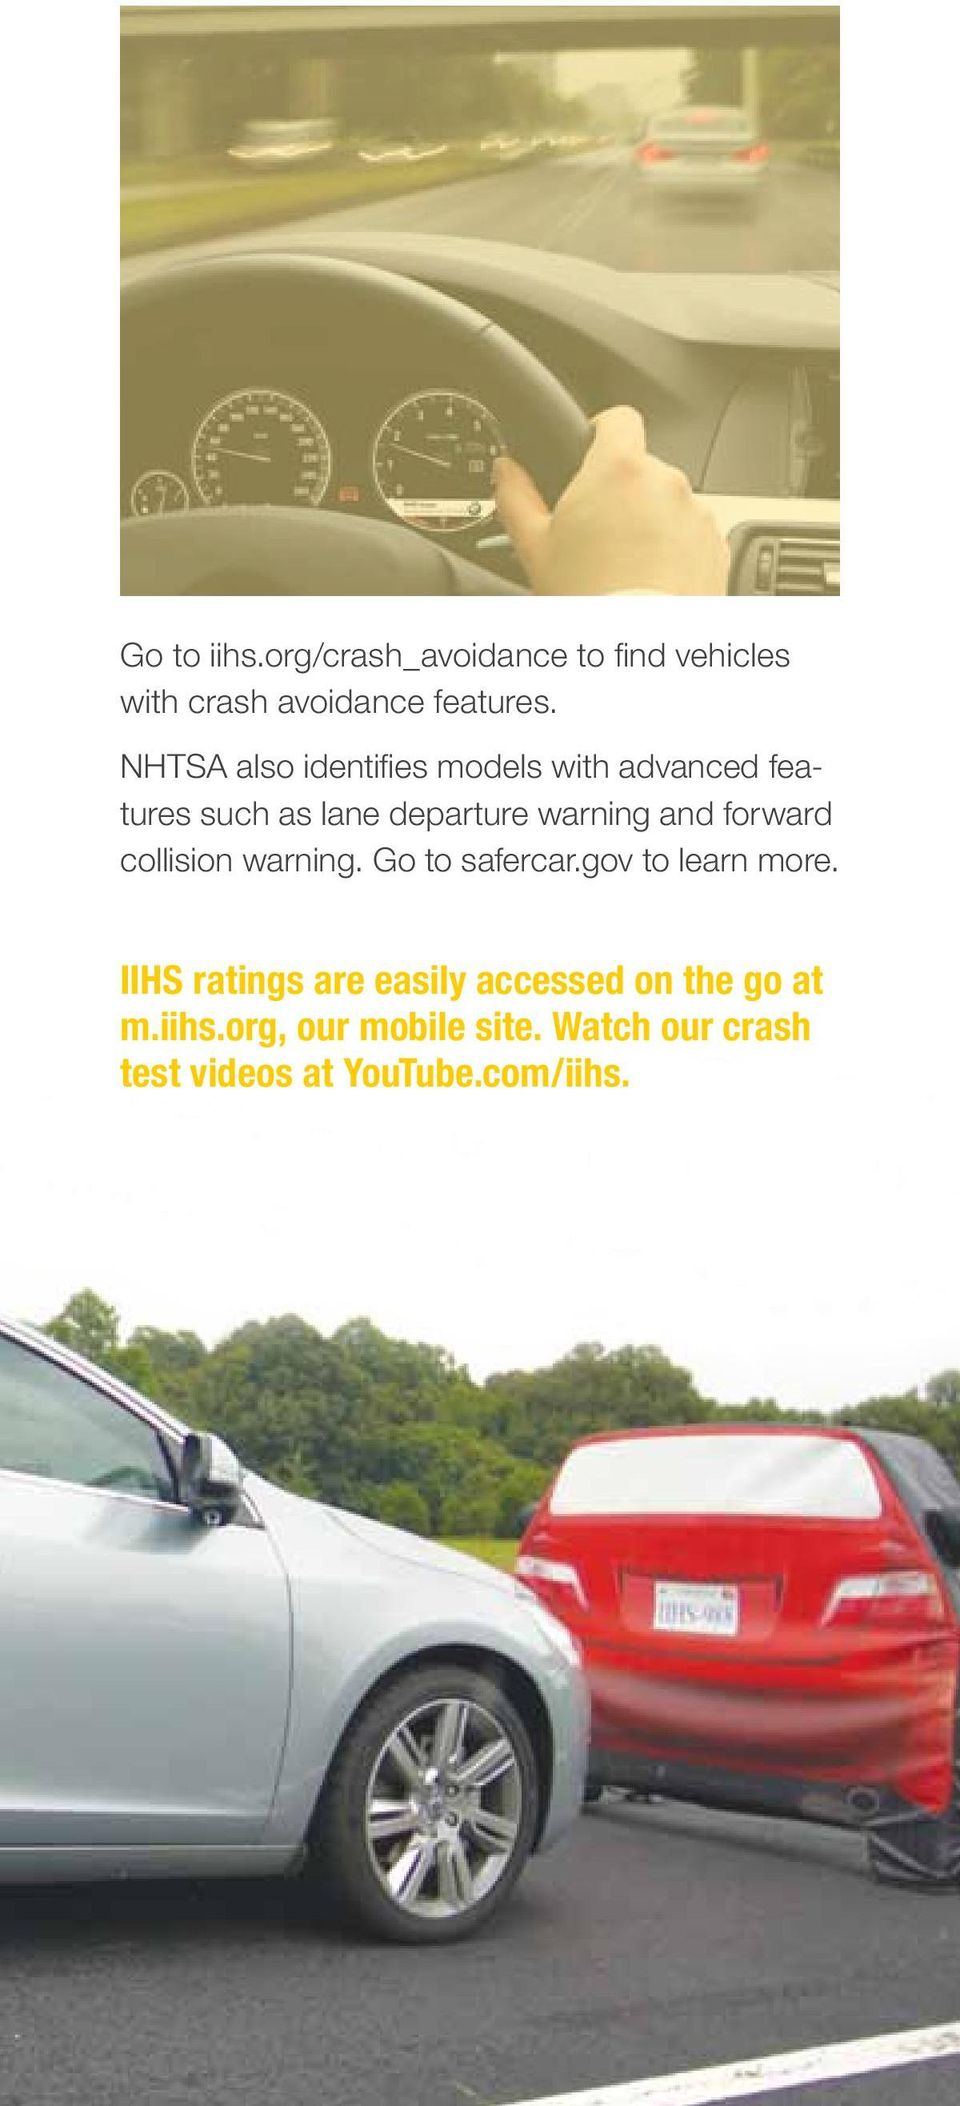 forward collision warning. Go to safercar.gov to learn more.